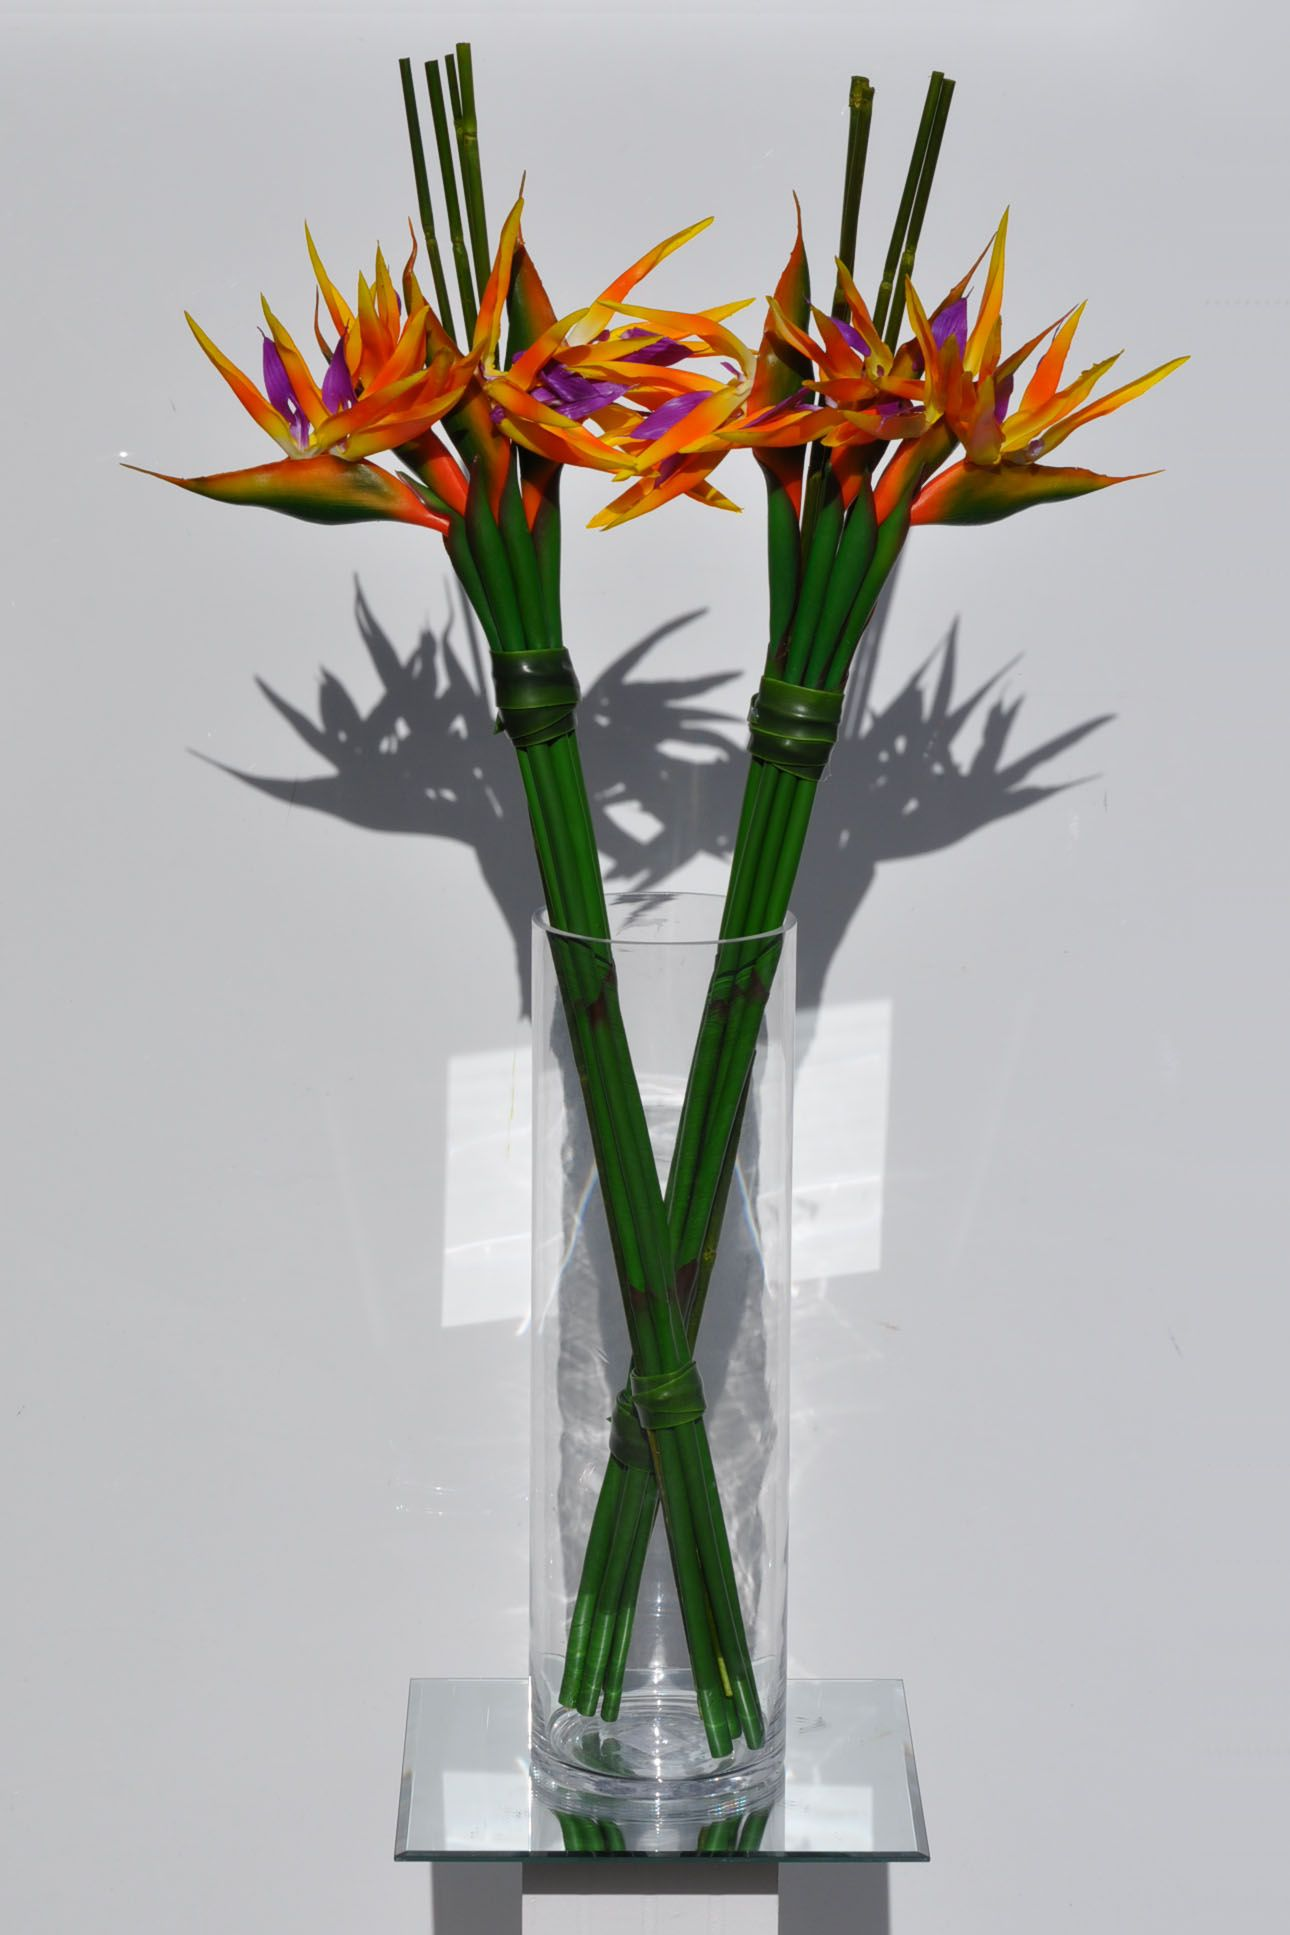 Artificial Simple Bird Of Paradise Arrangement W Bamboo Stems Arranjos De Flores Tropicais Arranjos De Flores Naturais Aranjos De Flores